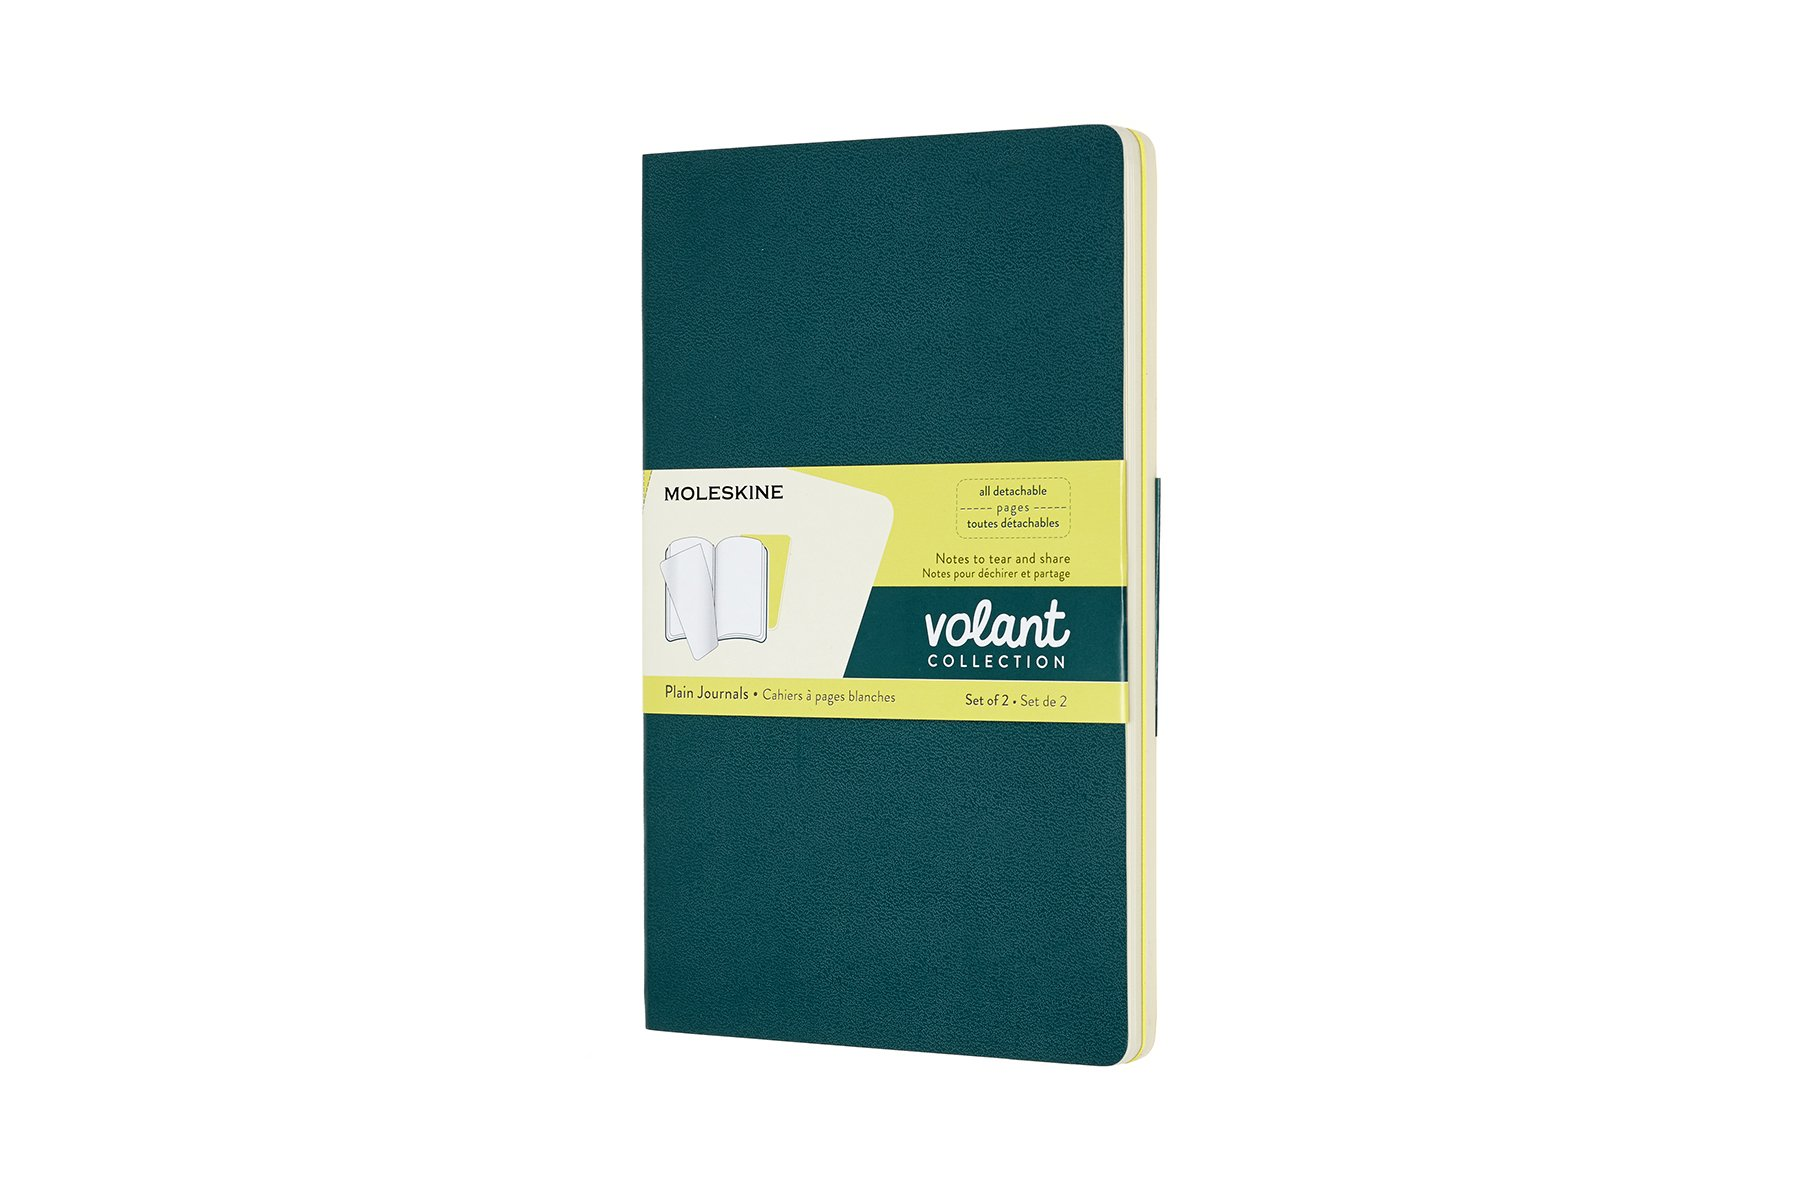 Moleskine Volant Soft Cover Journal, Set of 2, Plain, Large.